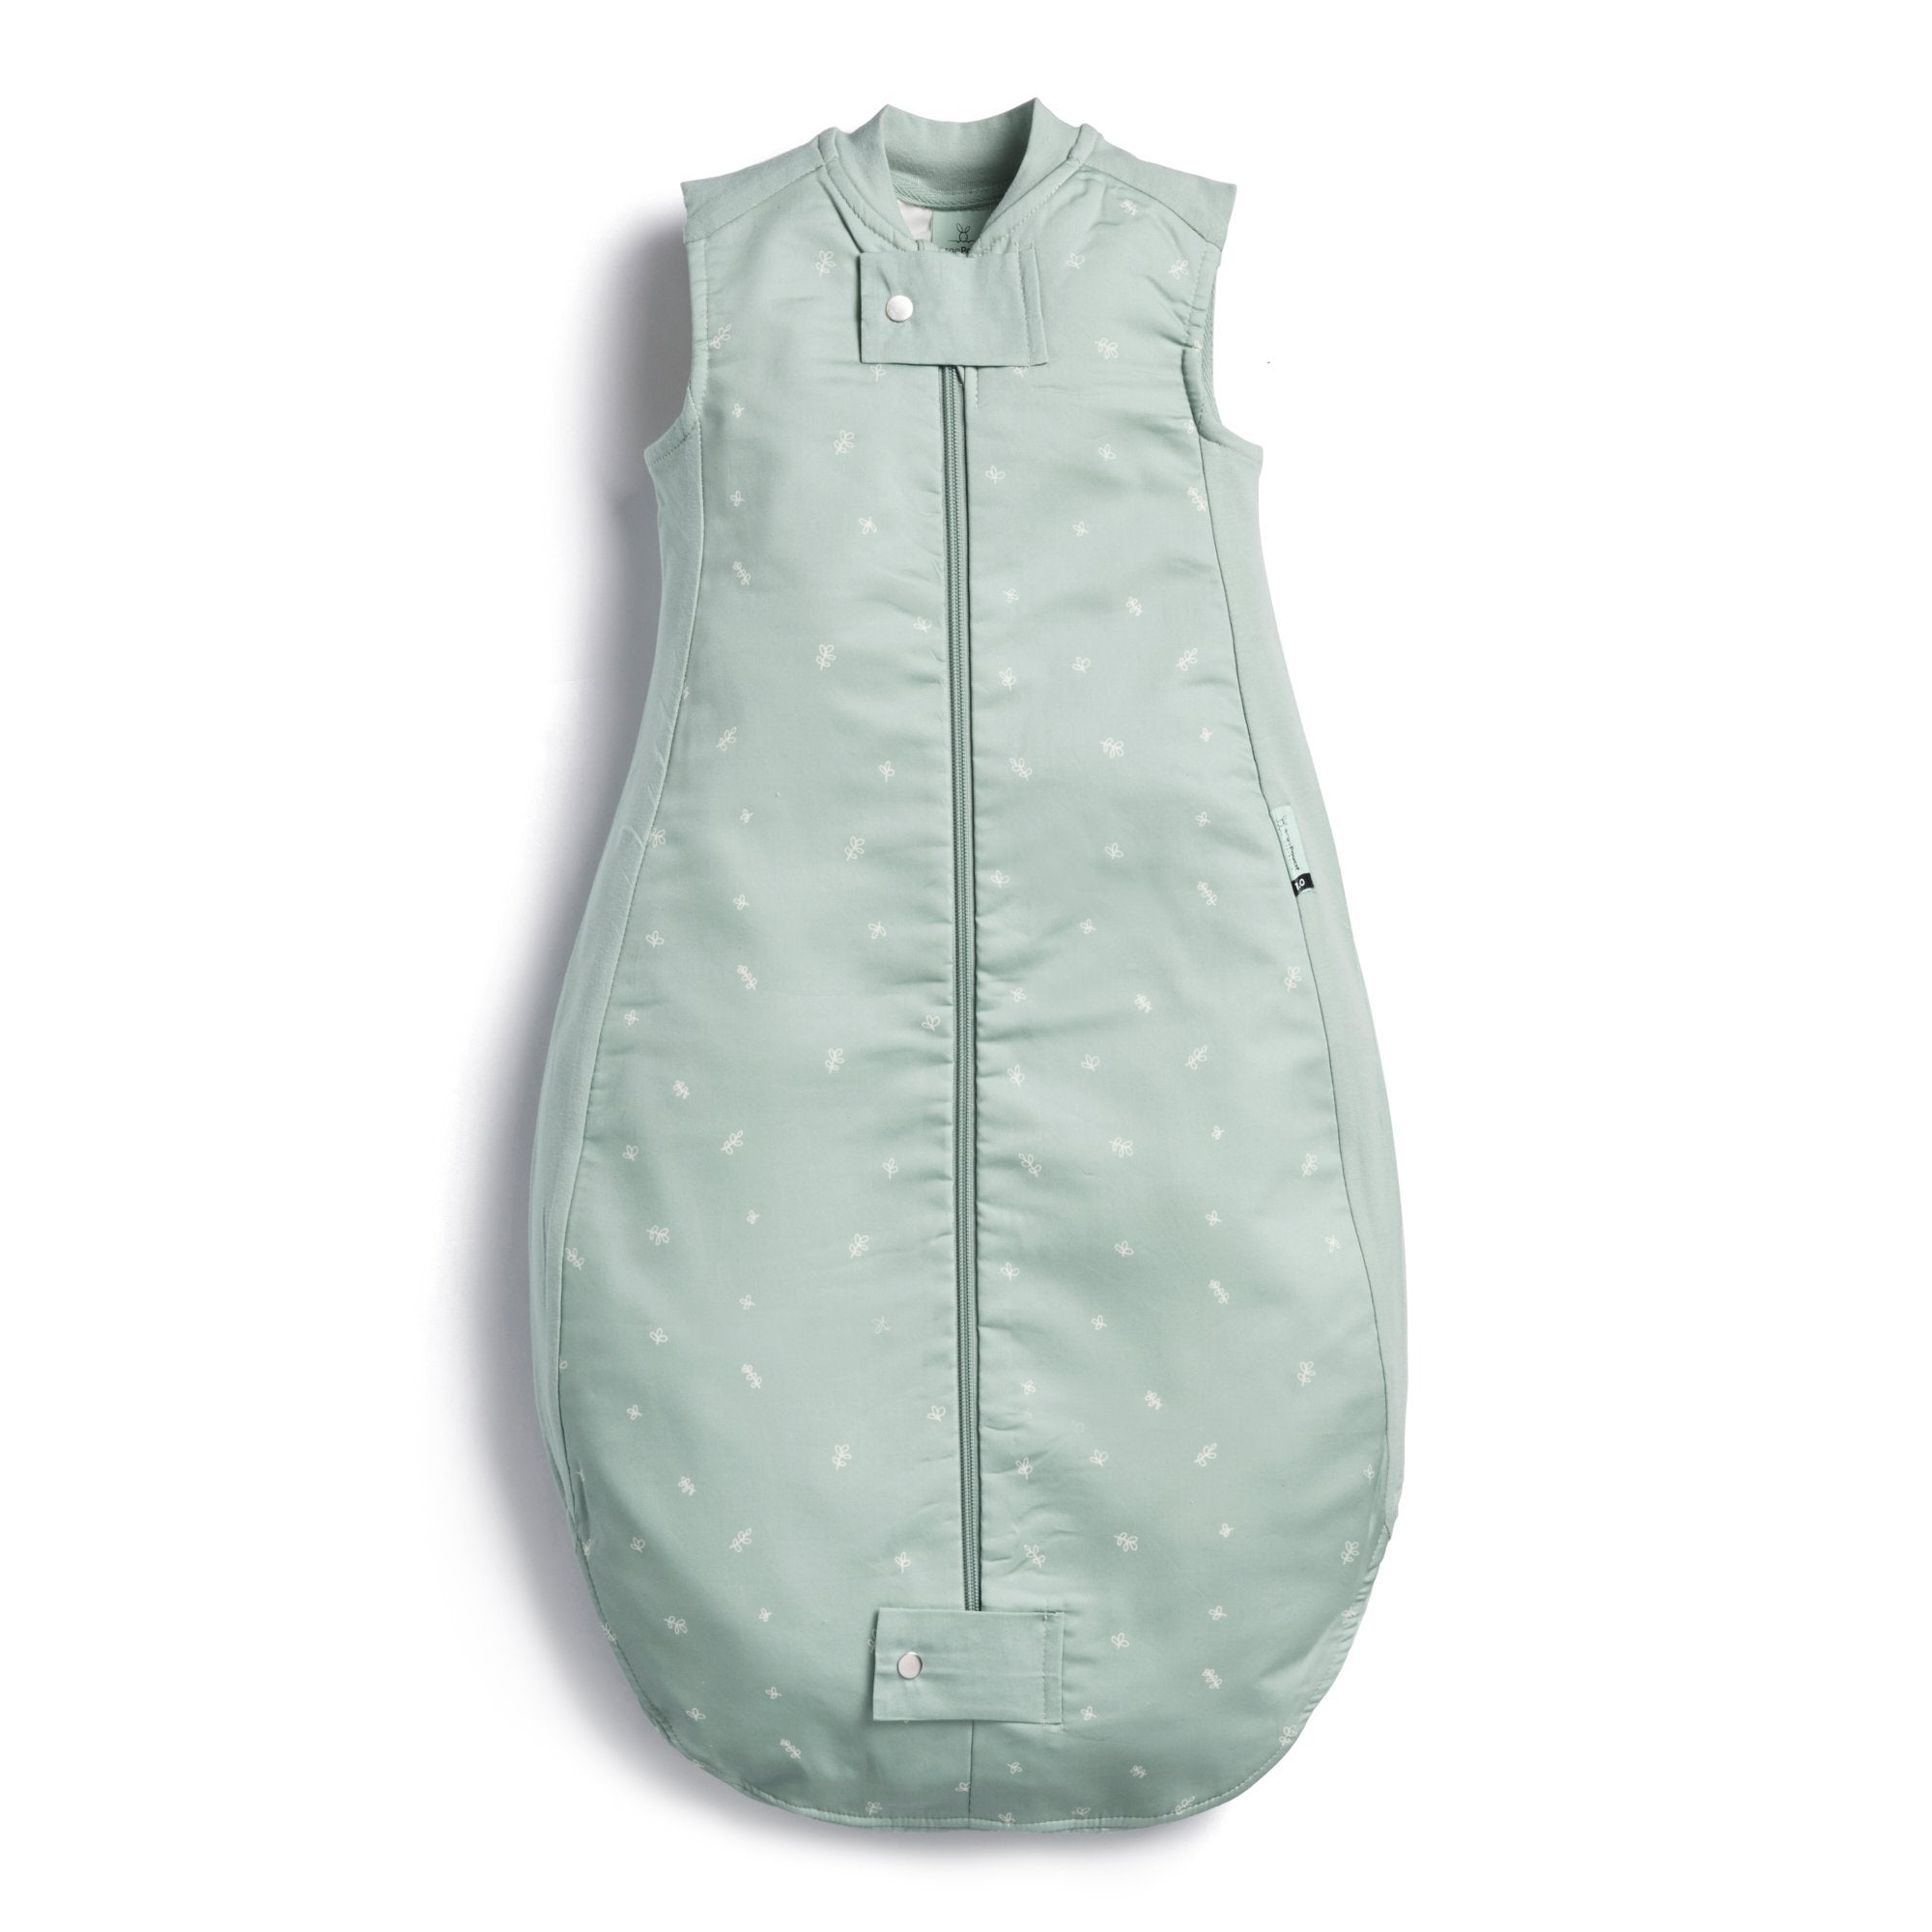 Sheeting Sleeping Bag 0.3 tog (Sage)